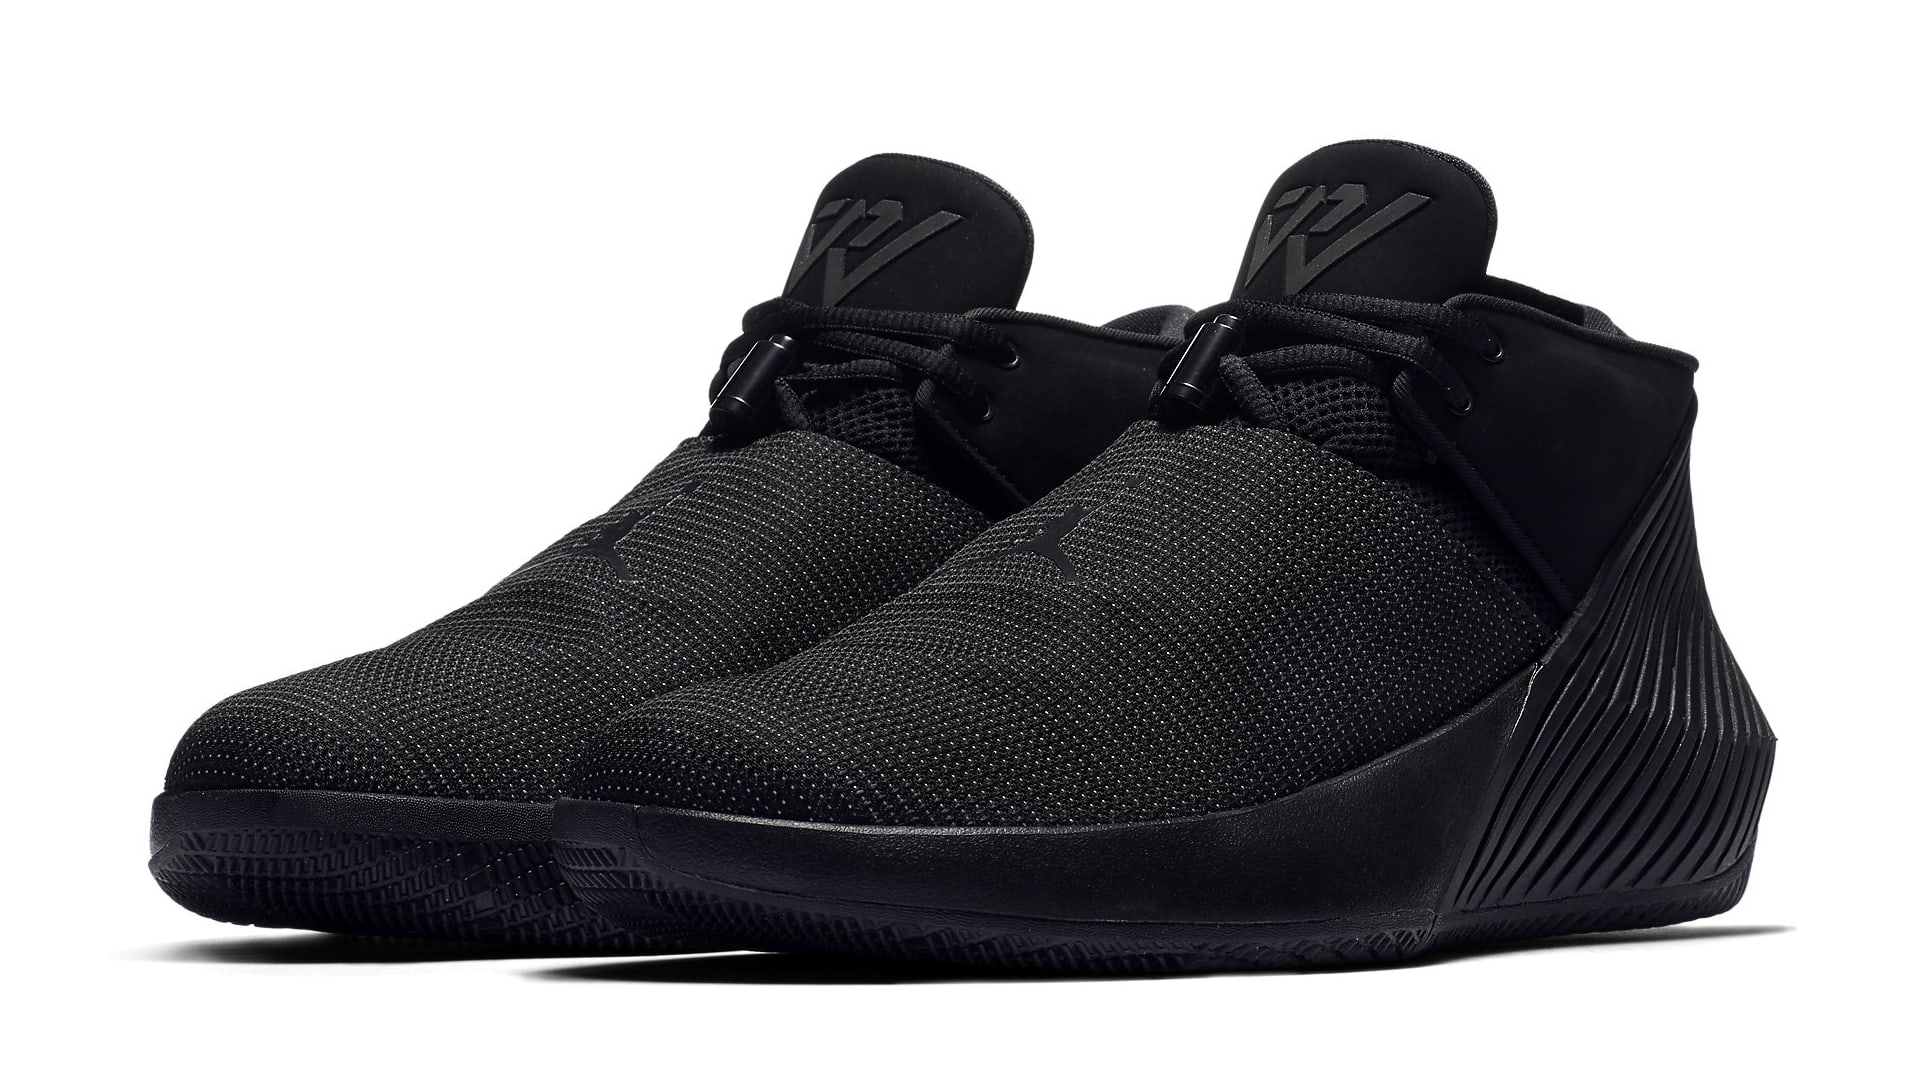 Buy Cheap With Mastercard 2018 Cool WHY NOT ZER0.1 LOW - Basketball shoes - black/white Discount Footaction Cheap Price Fake Outlet Store vVCla